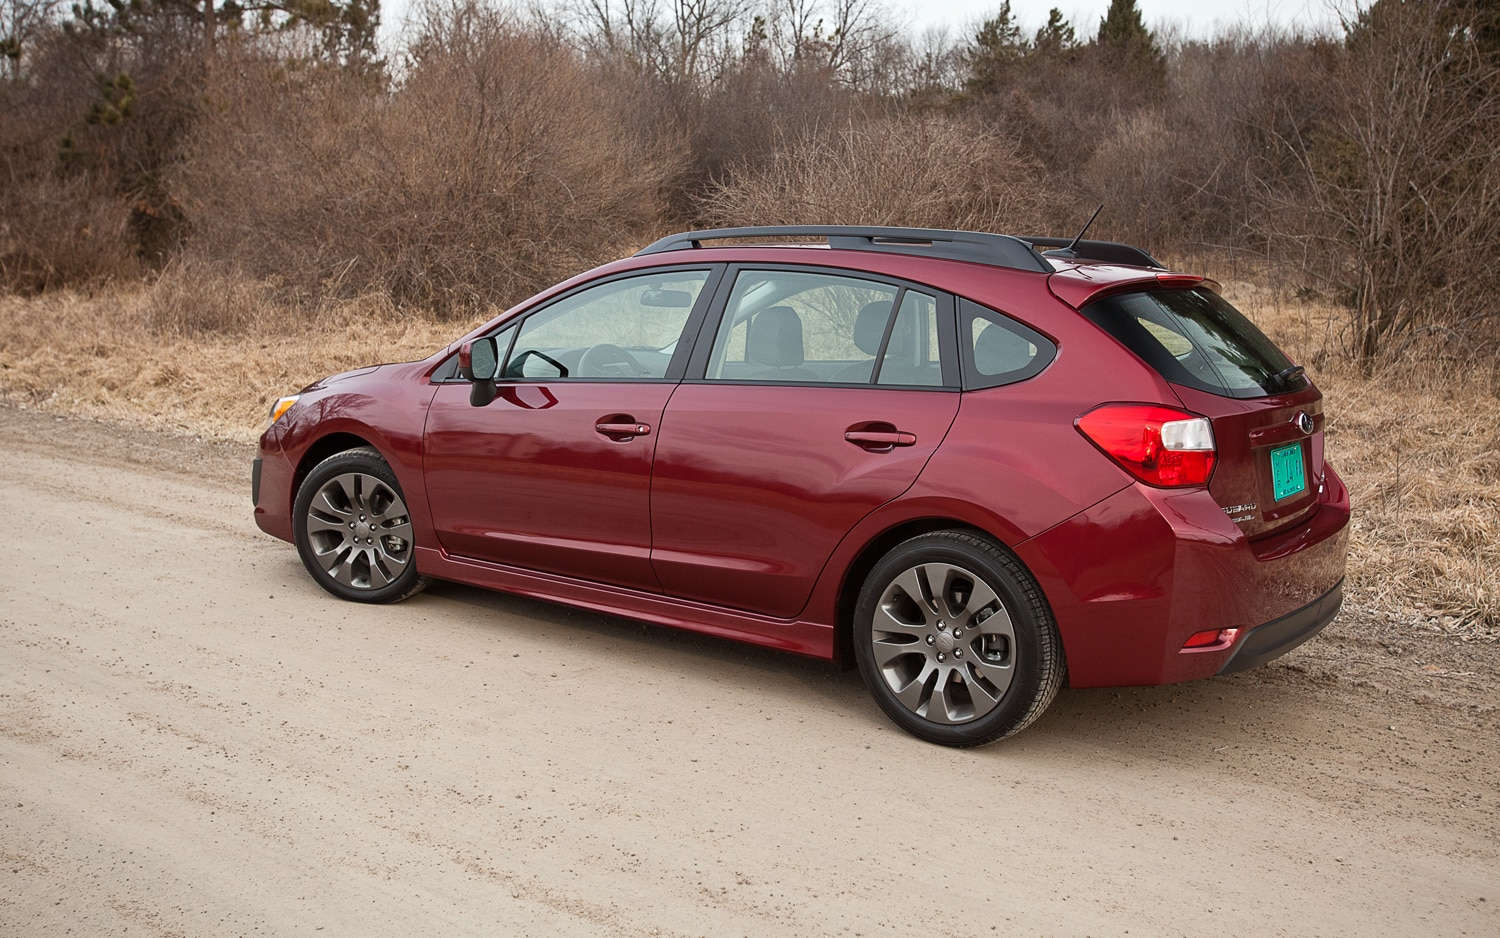 2012 subaru impreza 2.0i sport limited - editors' notebook